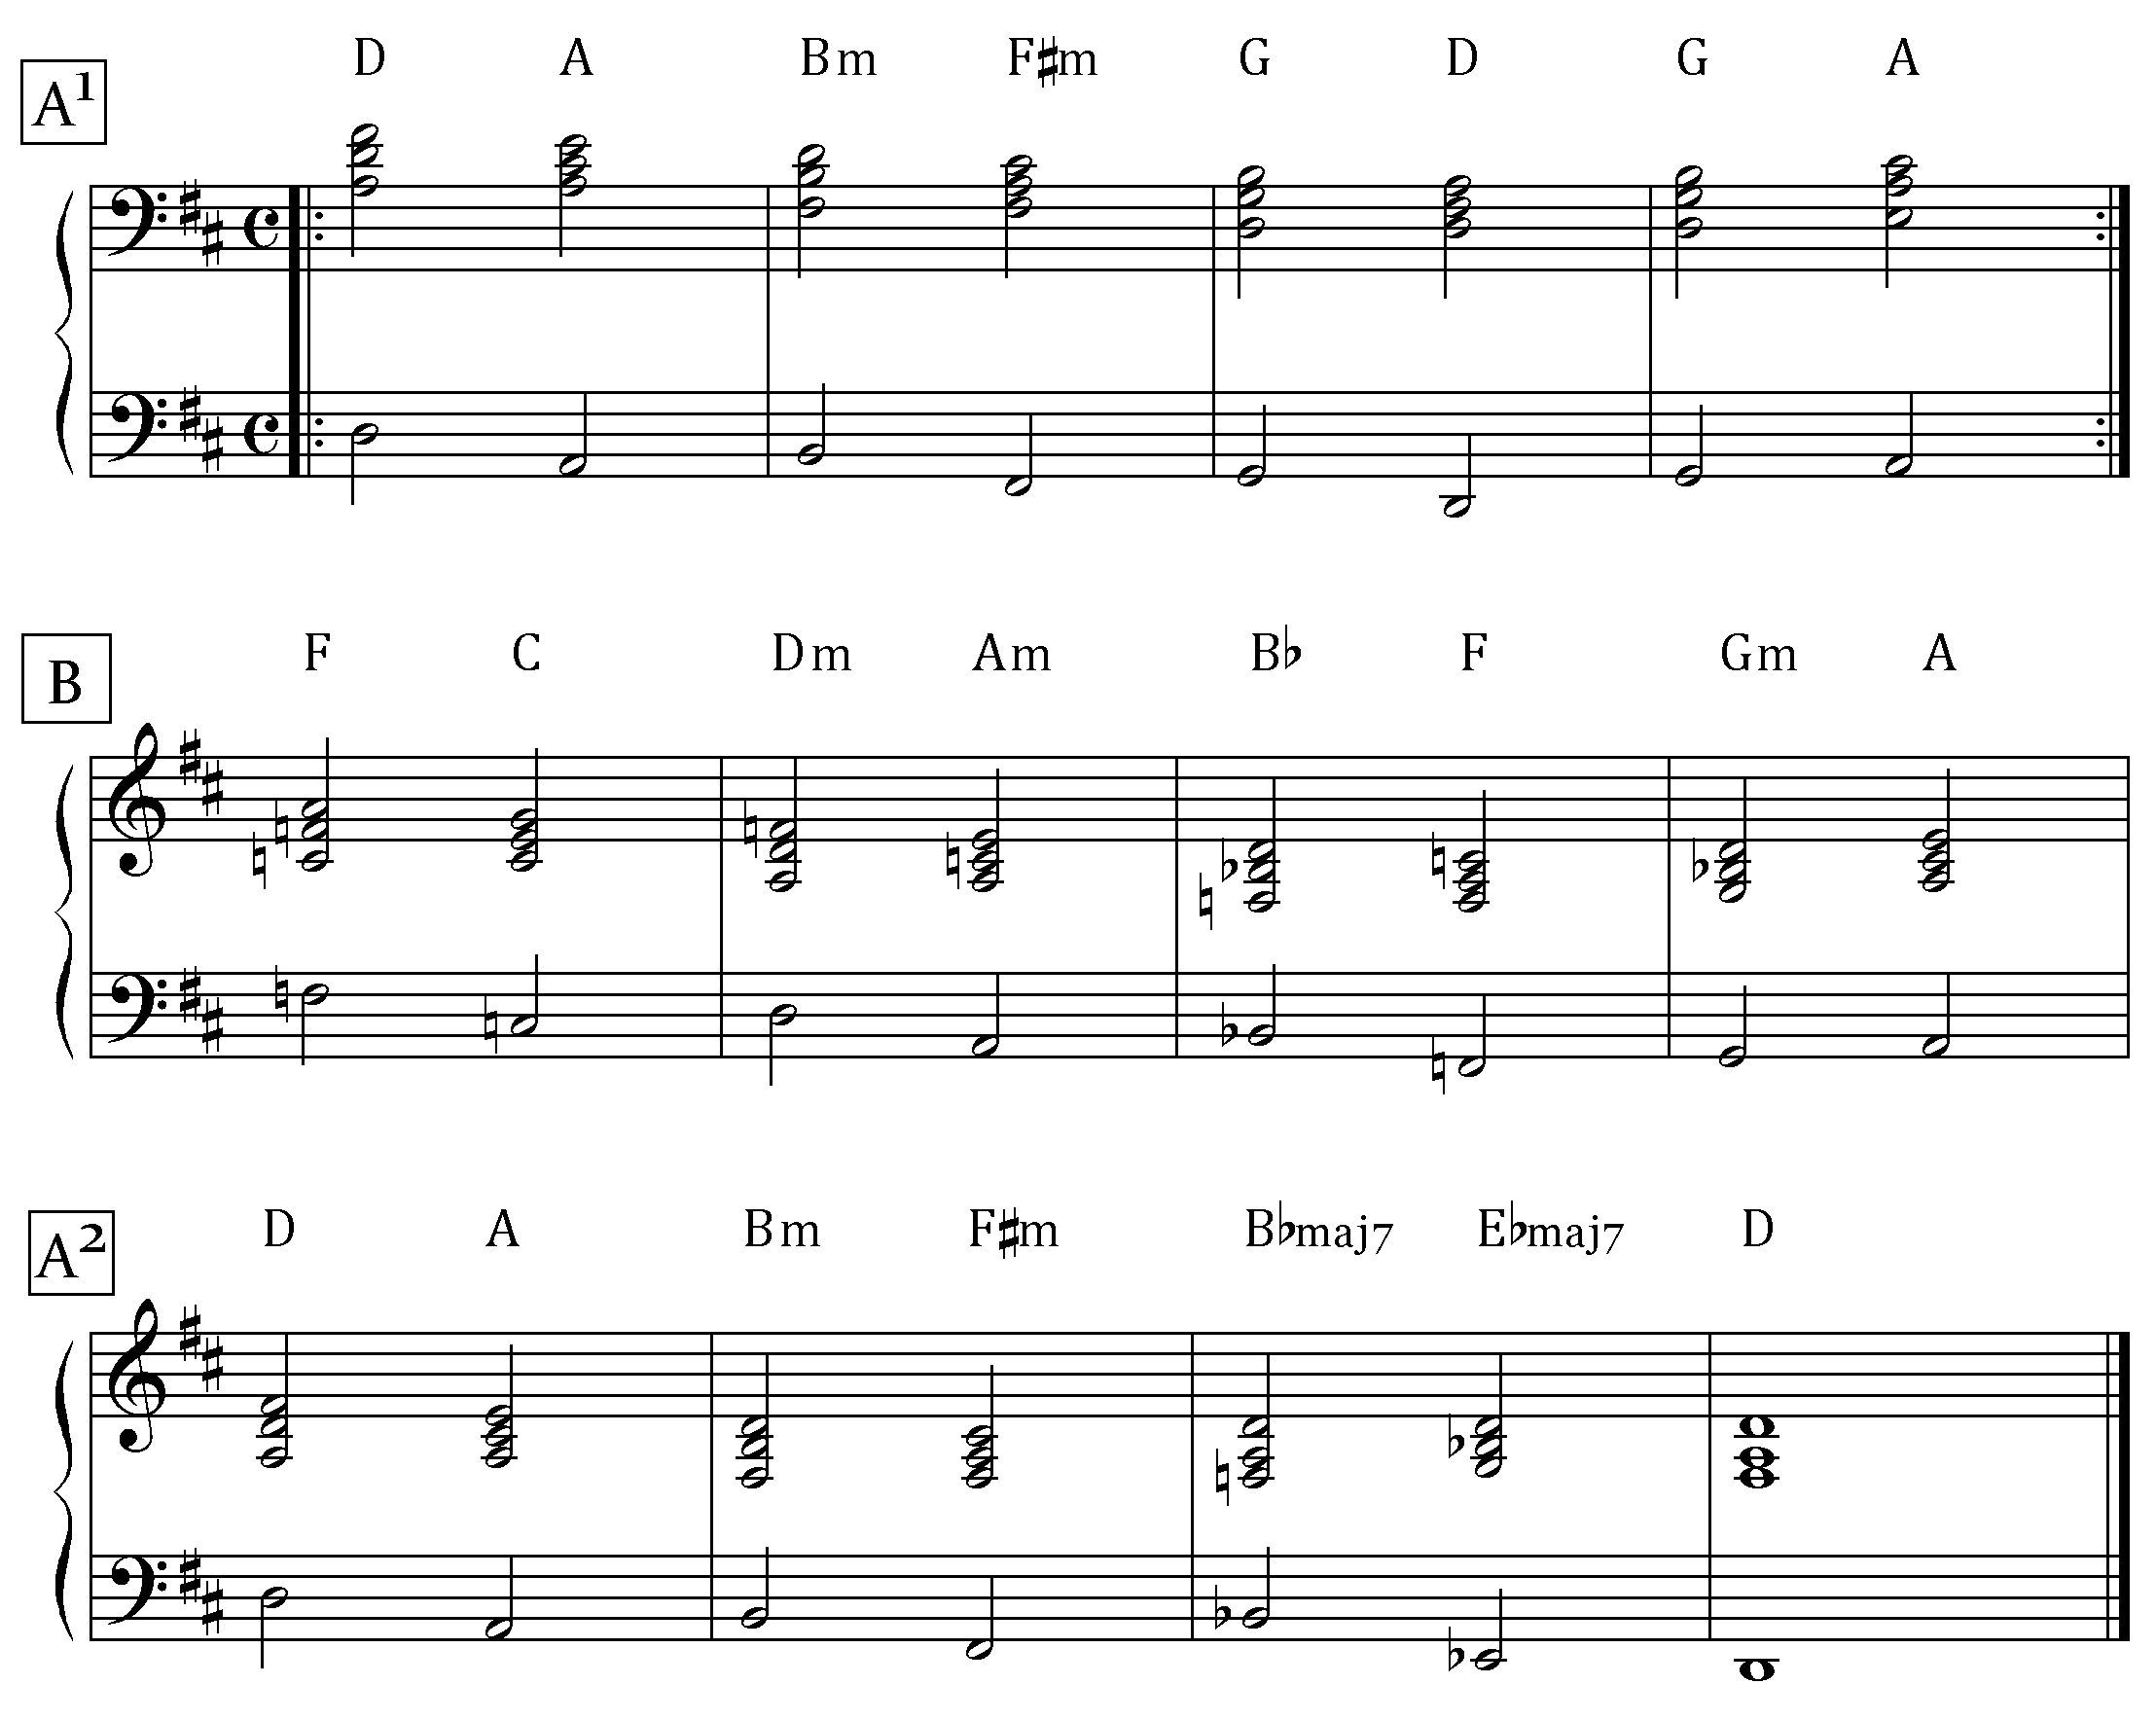 32 bar song form pdf